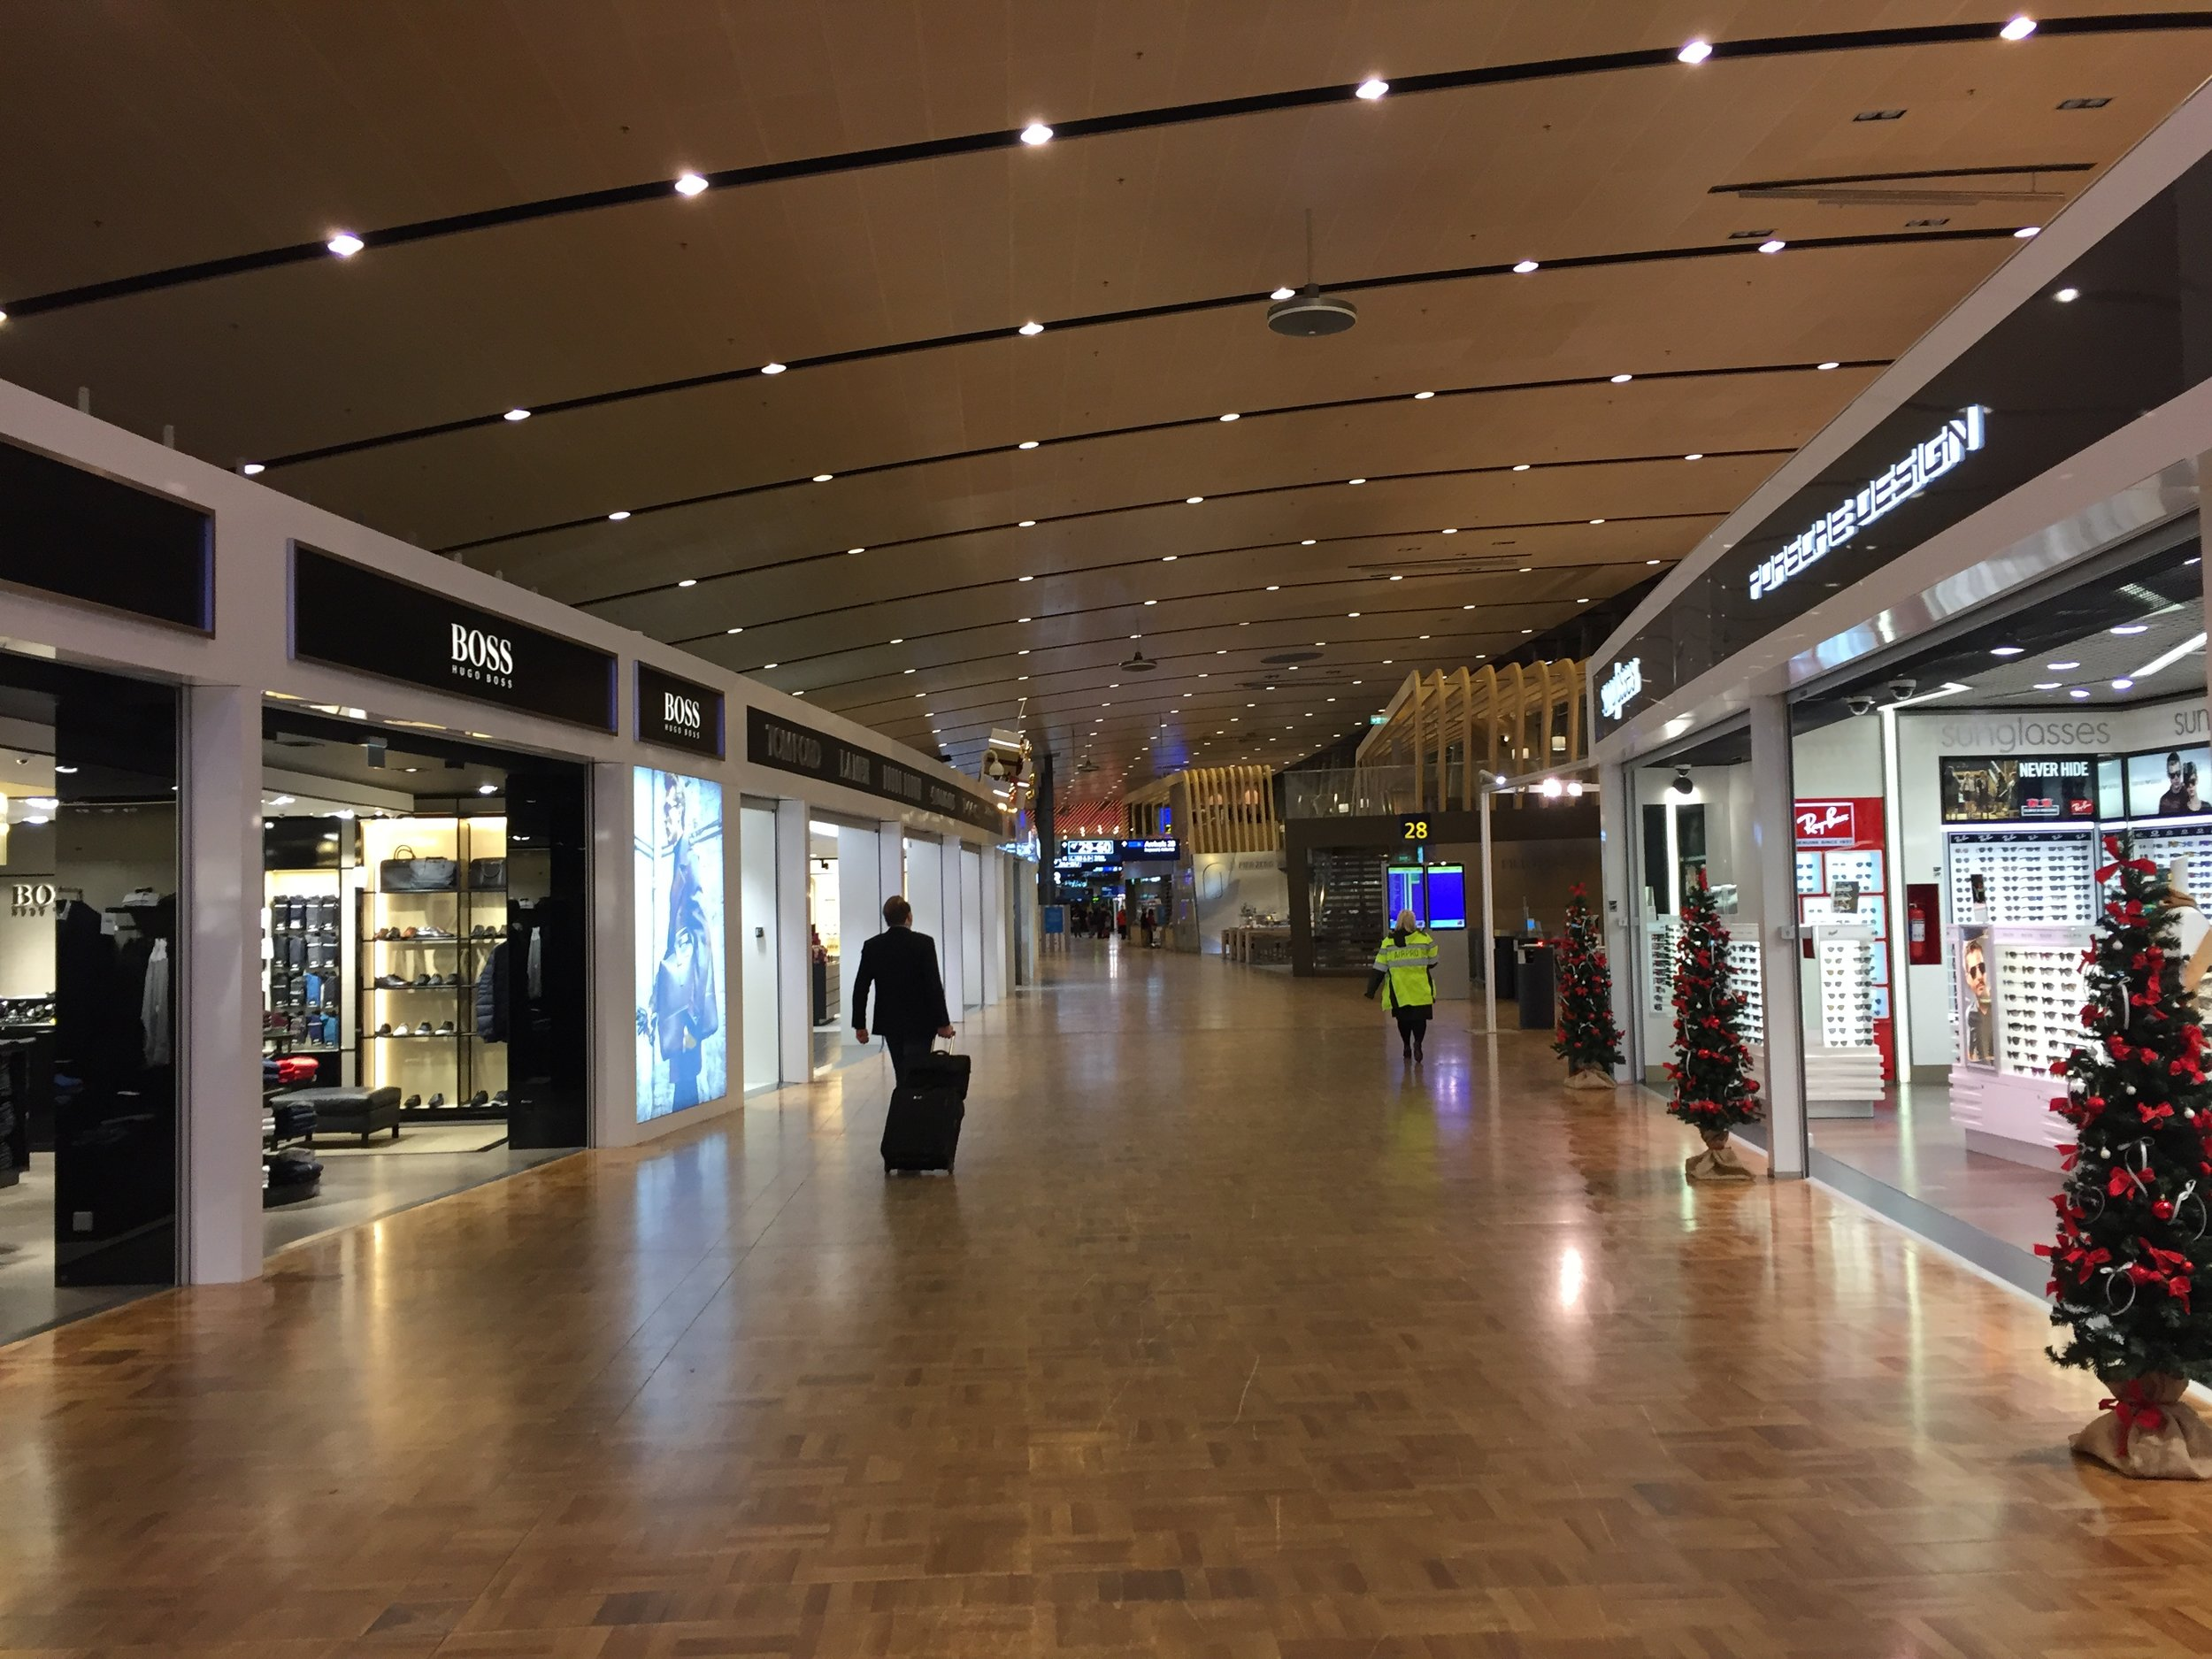 Helsinki airport was not particularly busy at this time of the night...